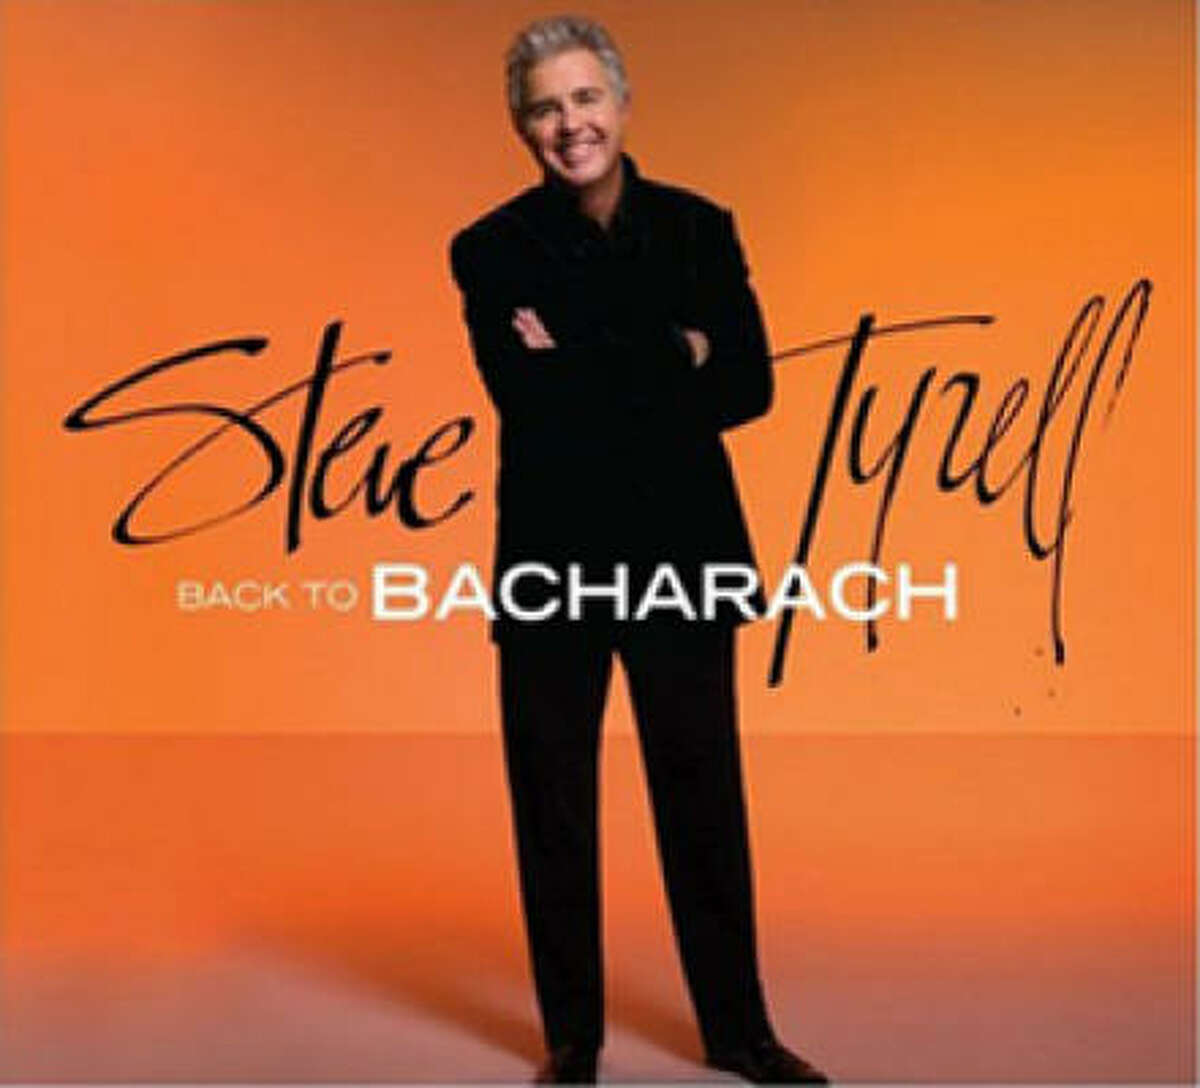 Back to Bacharach (2008), Steve Tyrell: Houstonian Tyrell's gruff, twangy voice was a warm partner for the often clean standards by his mentor Burt Bacharach.